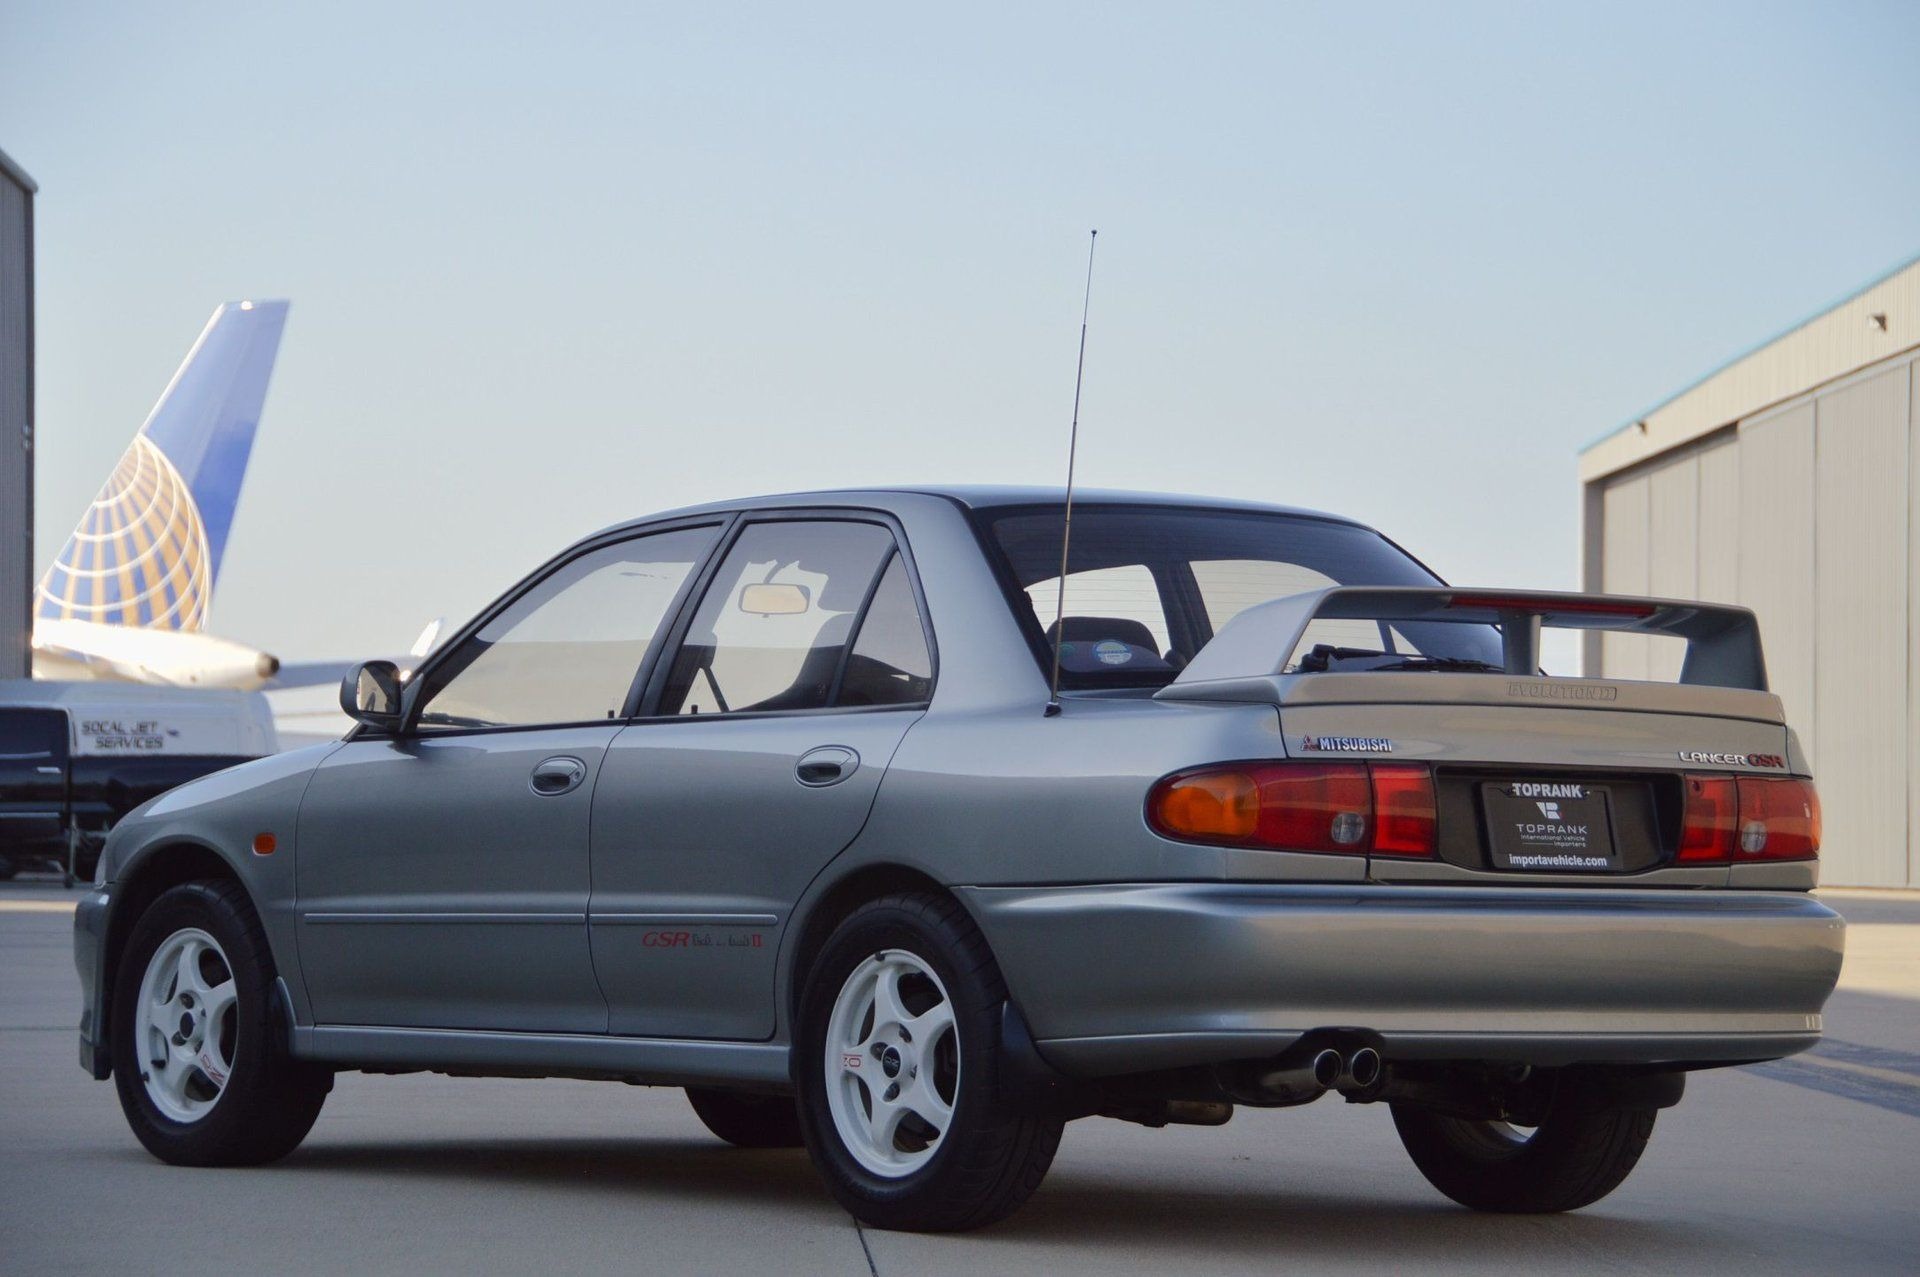 Buy This Ultra-Clean Lancer Evolution II Instead of the STI You Were Considering